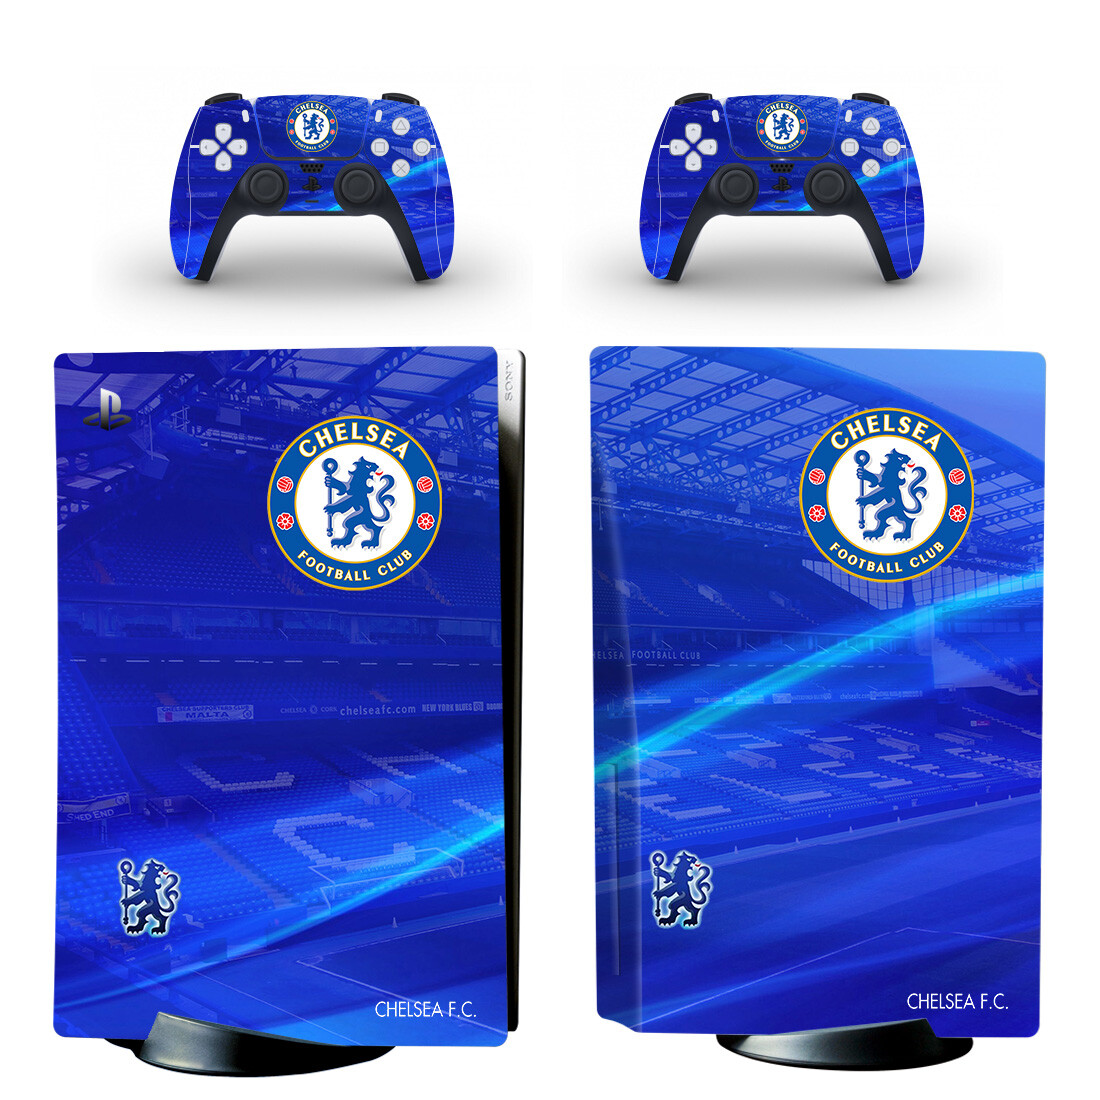 Chelsea Football Club Skin Sticker For PlayStation 5 And Controllers